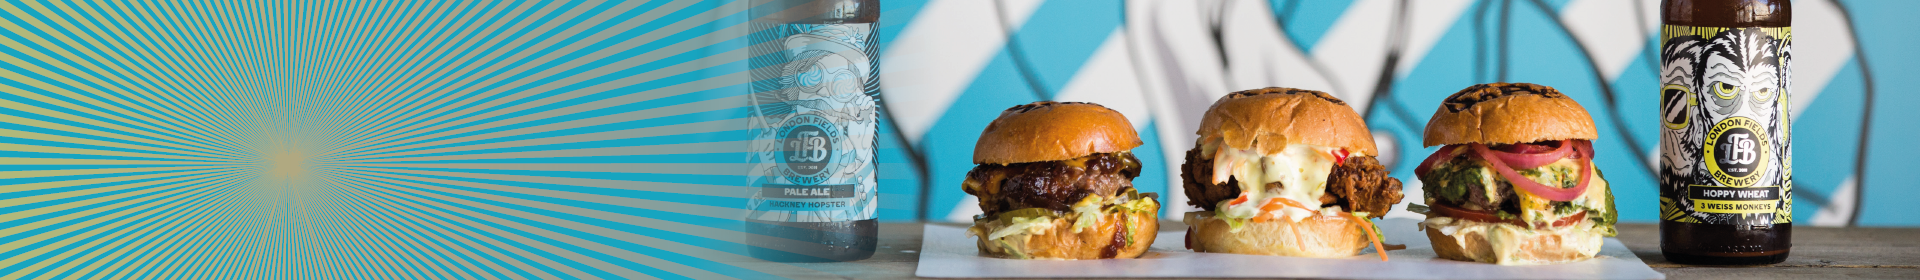 Burger mit London Field Bierflaschen